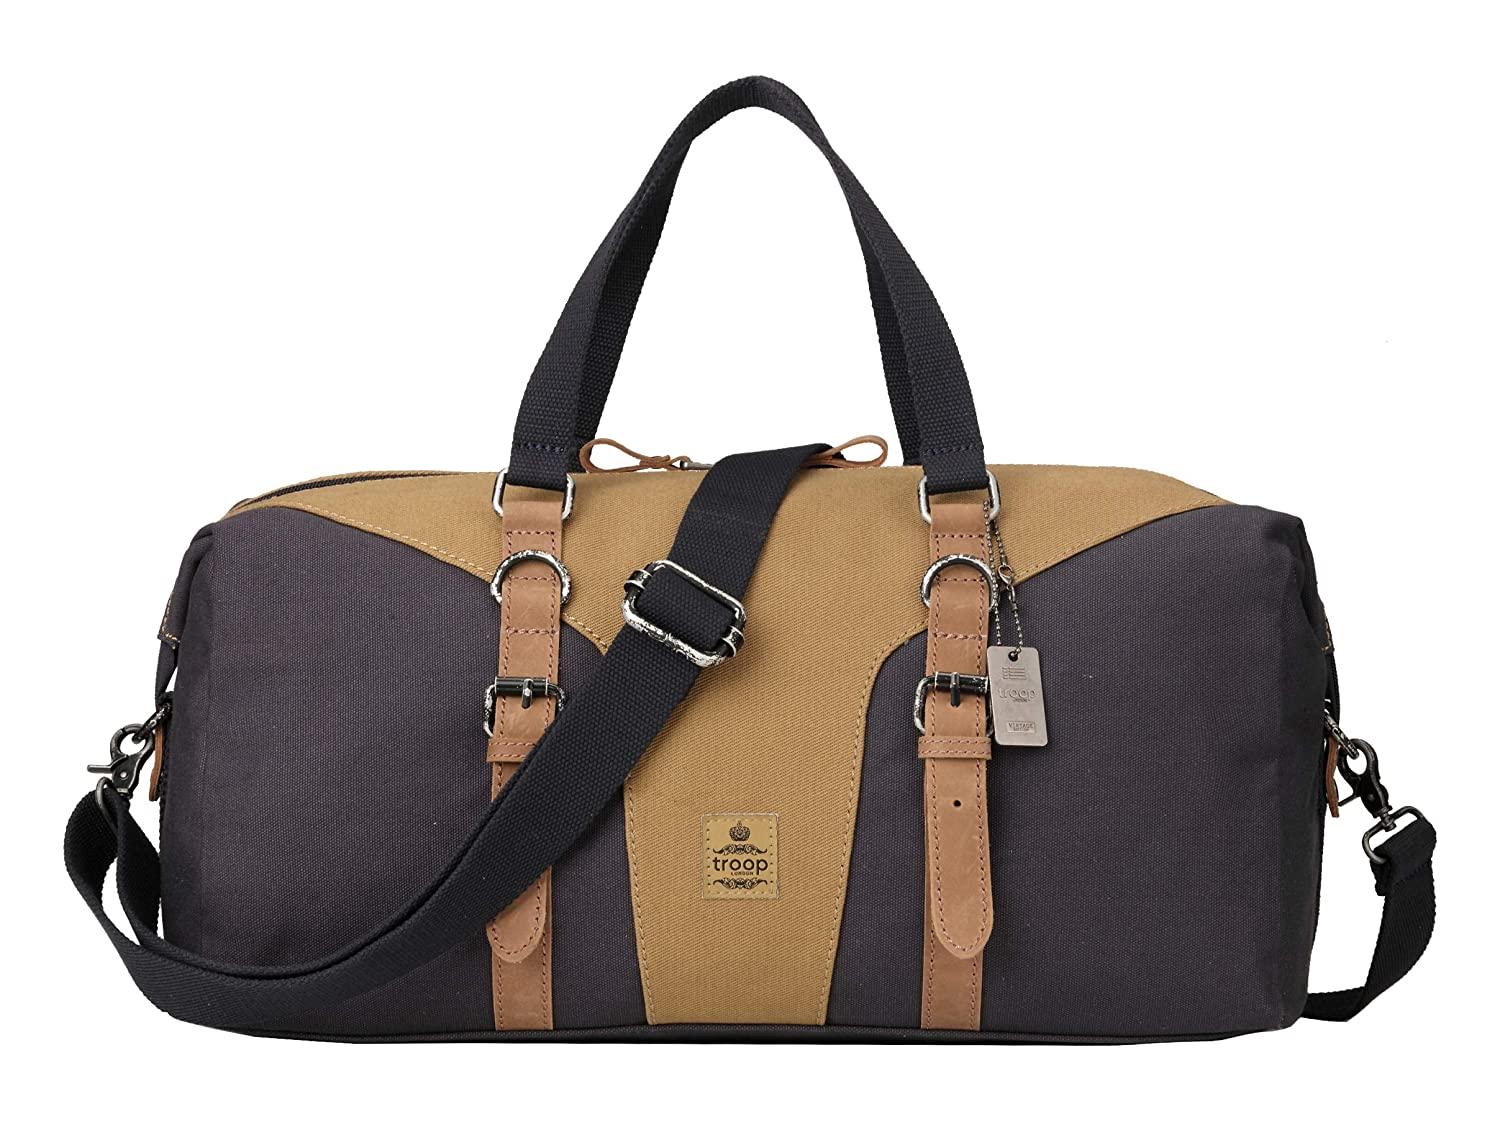 Navy Camel Canvas Holdall Gym Bag TRP0432 Troop London Heritage Canvas Leather Travel Duffel Bag